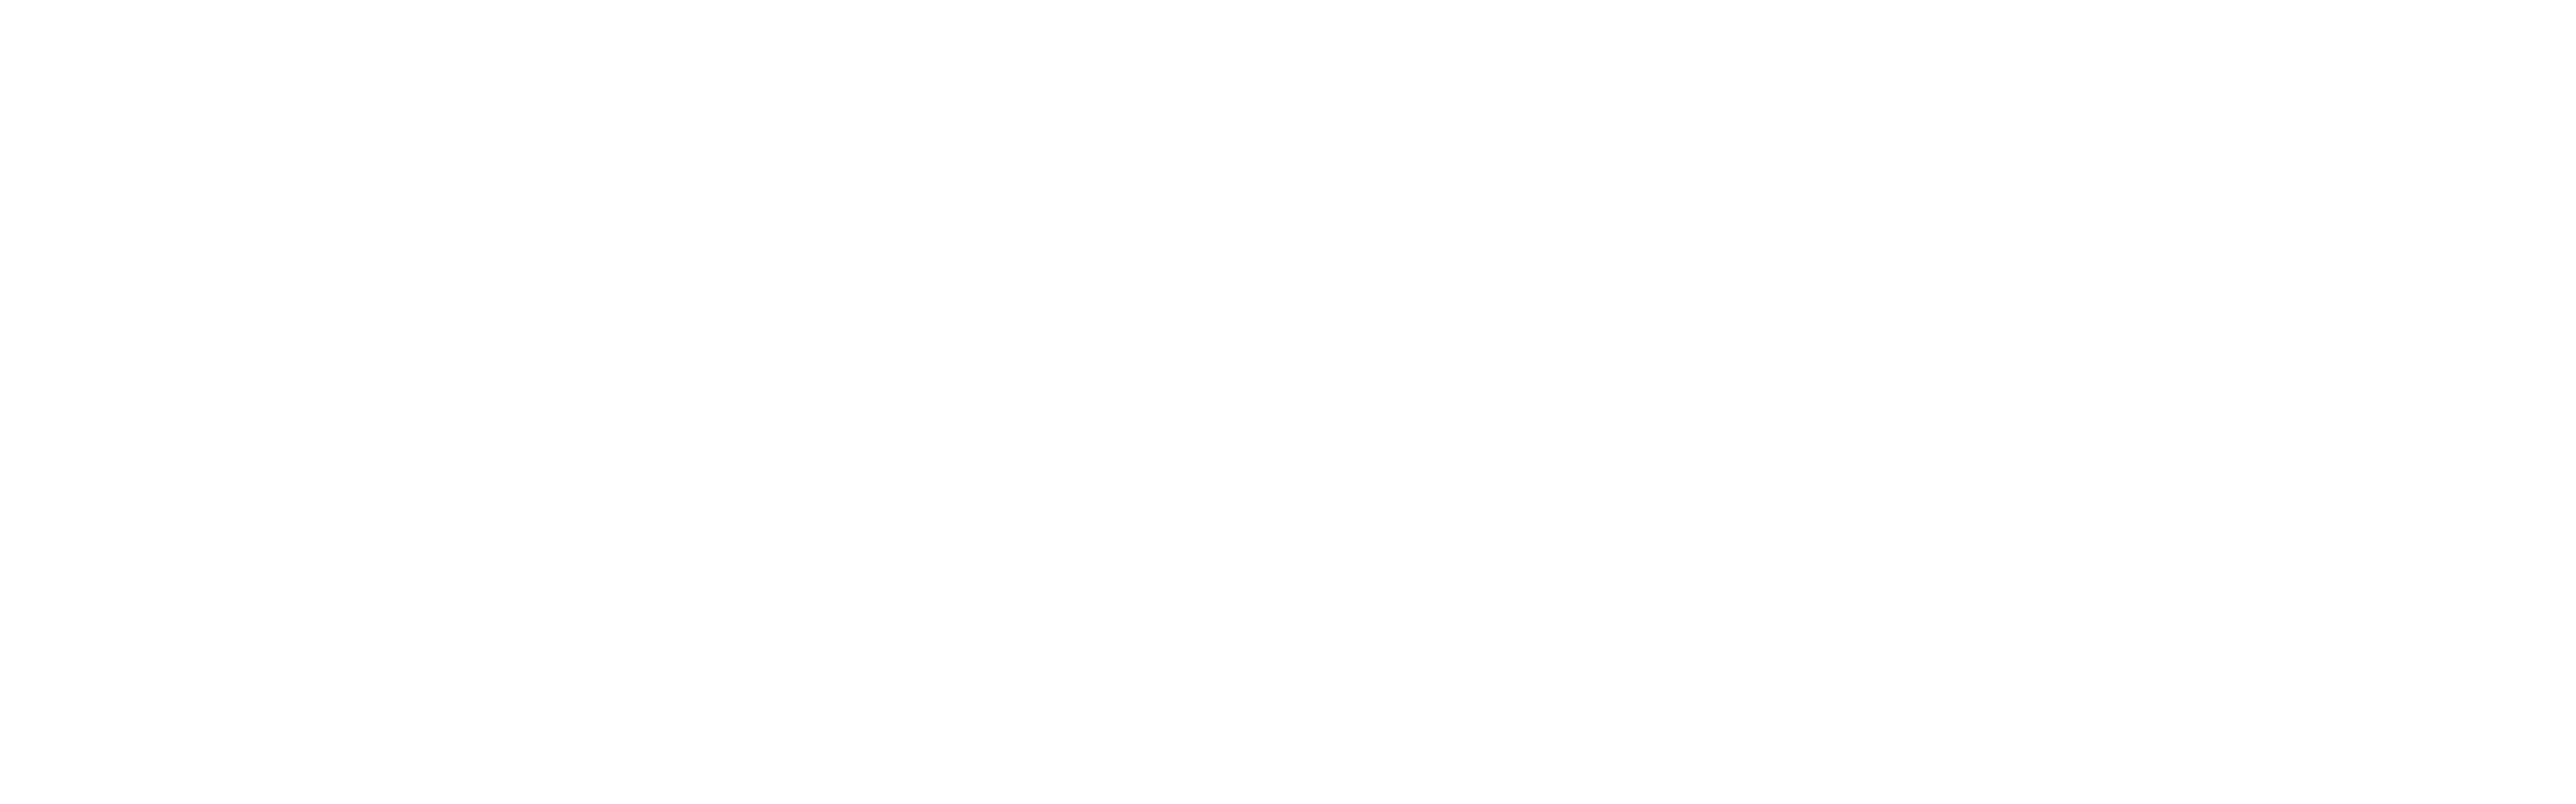 Roscommon Floral & Growing Up Greenhouse - Flower Delivery in Roscommon, MI